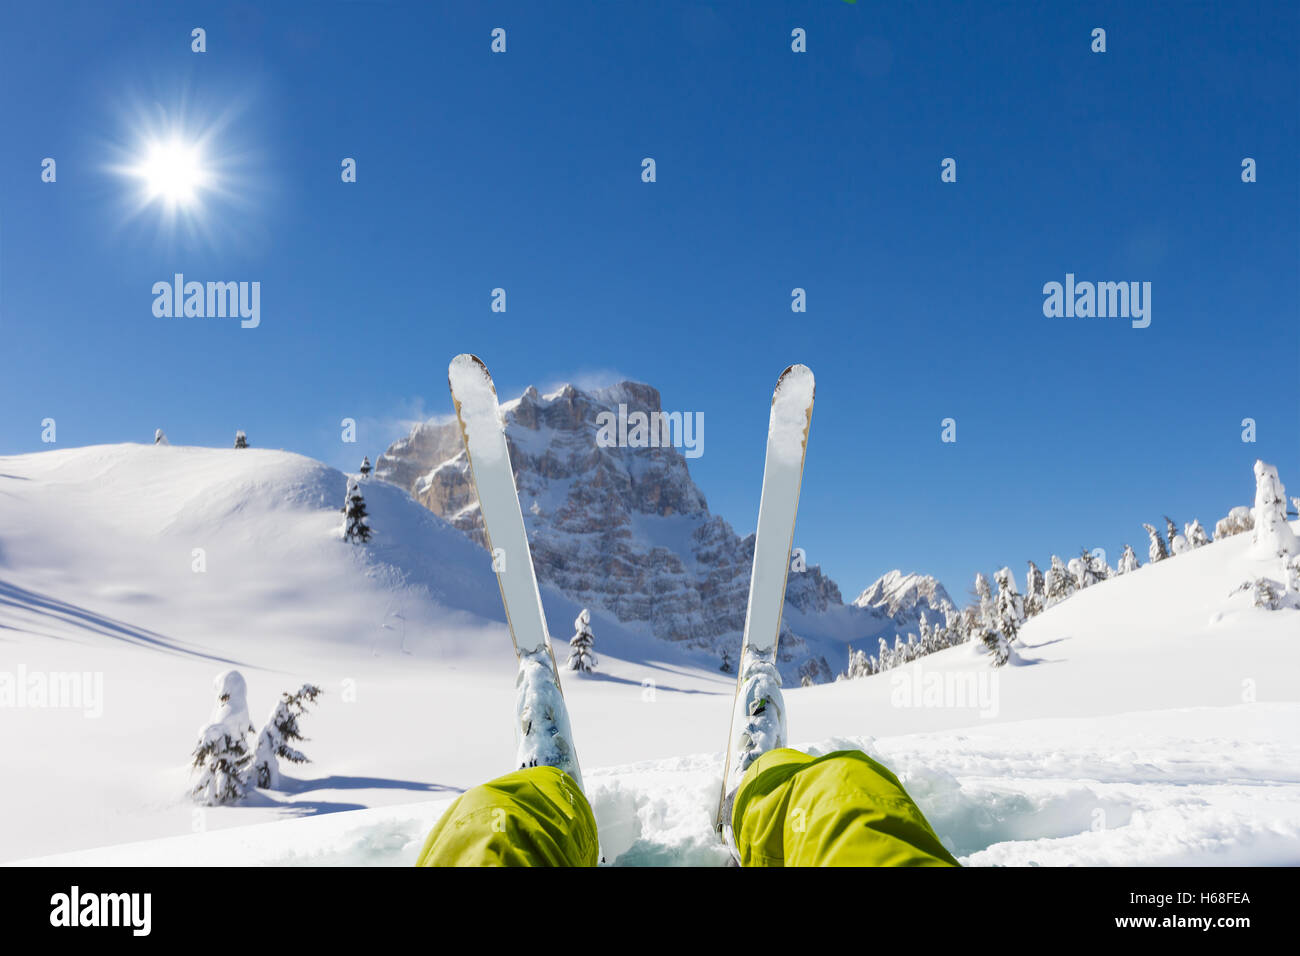 Detail of alpine skier legs, watching the valley panorama. Winter equipment, vacation concept, copyspace for text - Stock Image